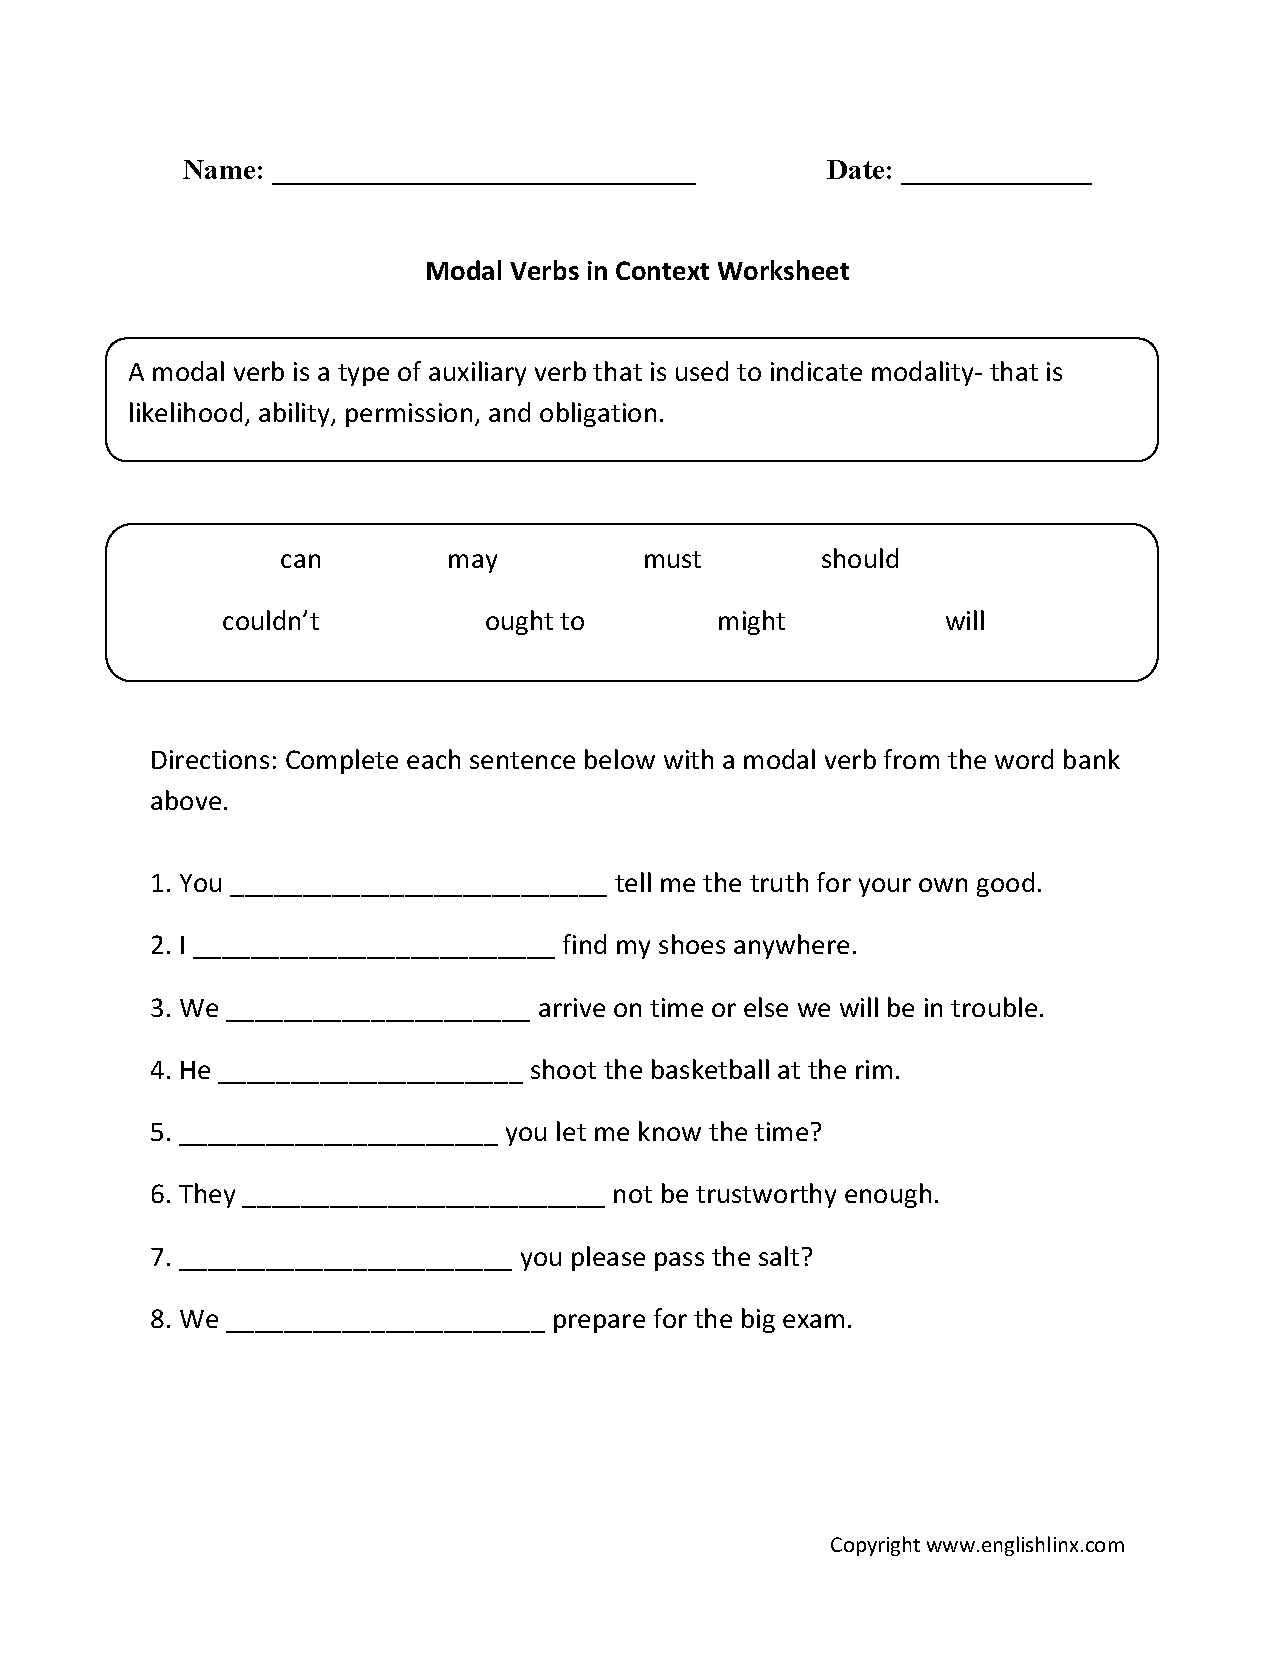 Aldiablosus  Pleasant Worksheet For Verbs  Coffemix With Great Englishlinxcom  Verbs Worksheets With Extraordinary Bill Nye The Science Guy Nutrition Worksheet Also Arctic Worksheets In Addition Factors And Prime Factorization Worksheets And Create Subtraction Worksheets As Well As Finding The Slope Of A Line Worksheet With Graphing Additionally Free Handwriting Worksheets For Preschool From Coffemixcom With Aldiablosus  Great Worksheet For Verbs  Coffemix With Extraordinary Englishlinxcom  Verbs Worksheets And Pleasant Bill Nye The Science Guy Nutrition Worksheet Also Arctic Worksheets In Addition Factors And Prime Factorization Worksheets From Coffemixcom